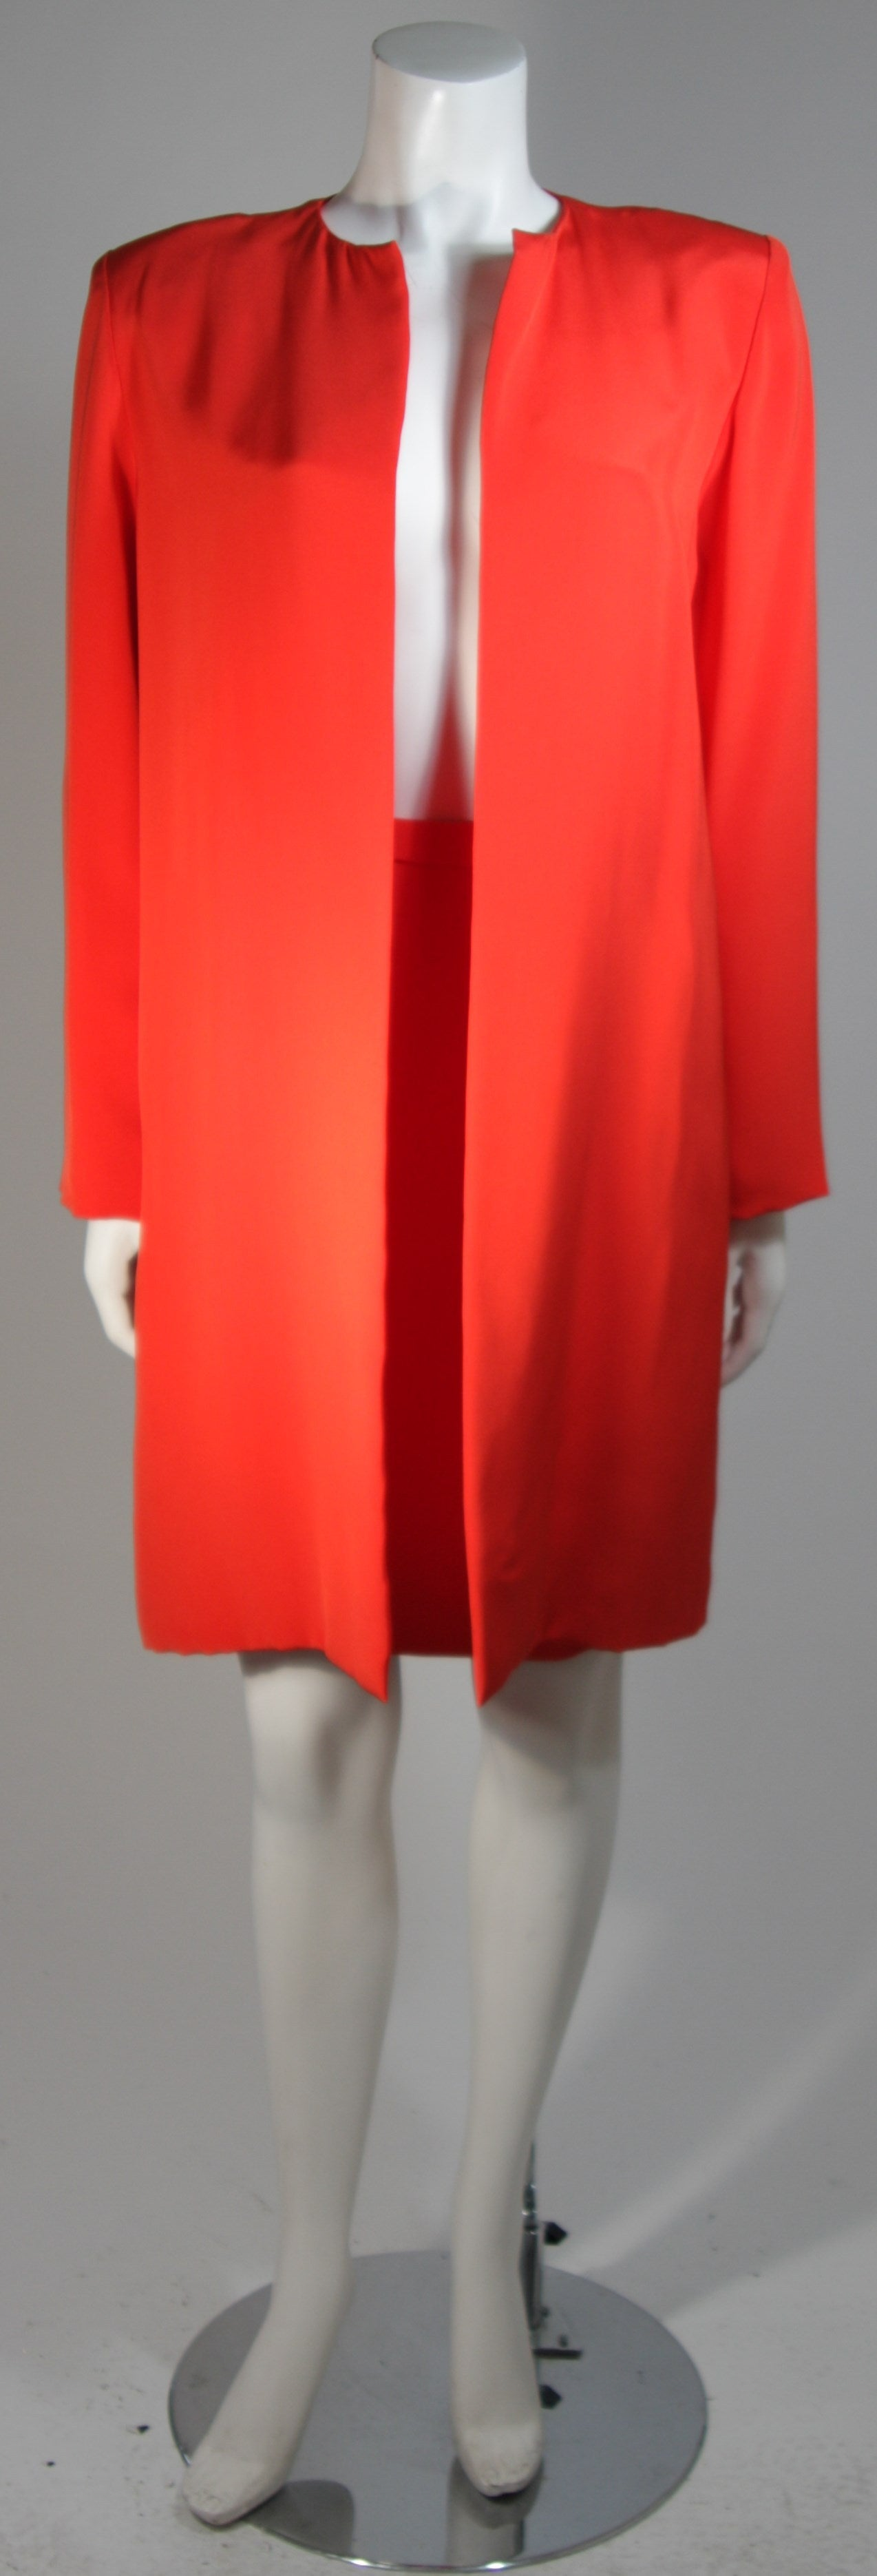 This Vicky Tiel suit is composed of an orange silk. The jacket has an open front style. The skirt is a classic pencil silhouette with a side zipper. In excellent condition. Made in France.